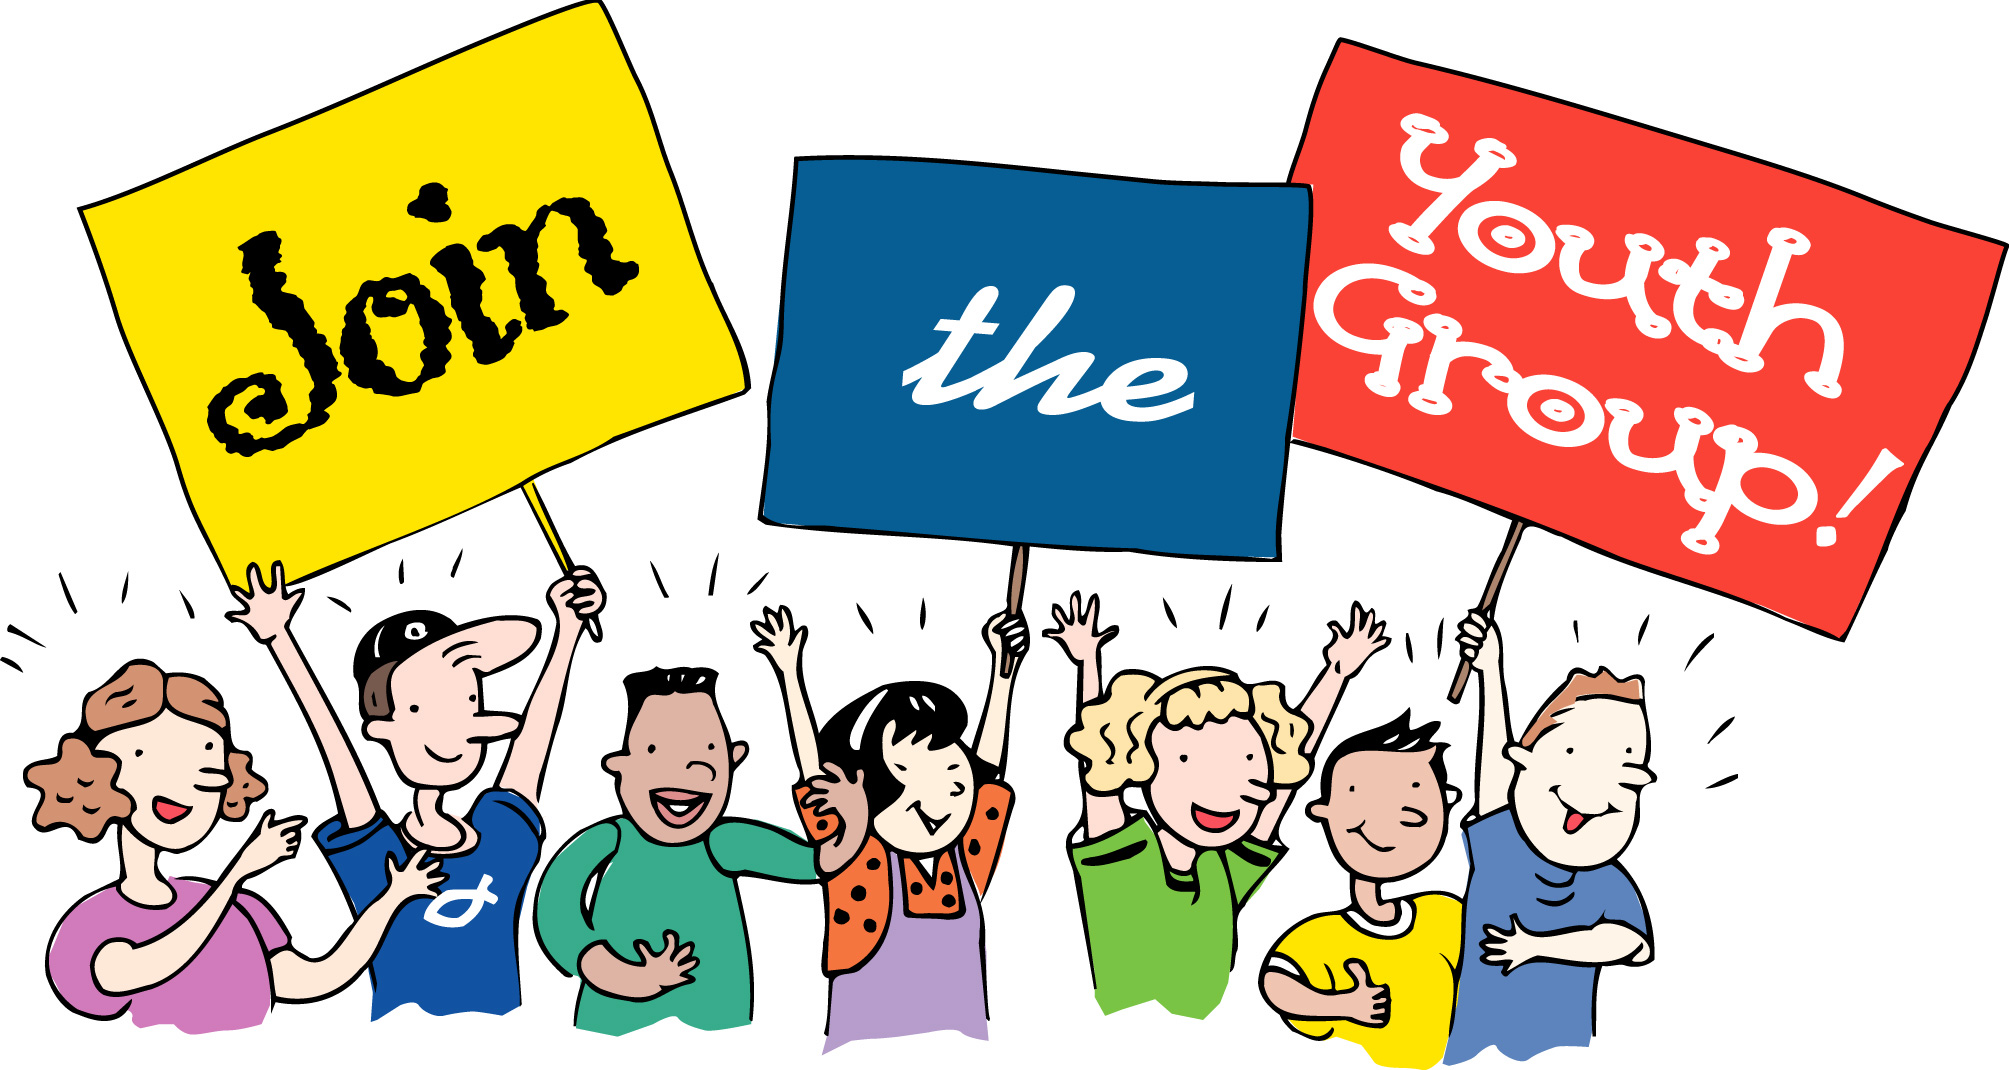 Meeting clipart group activity Youth m  Group 7:30